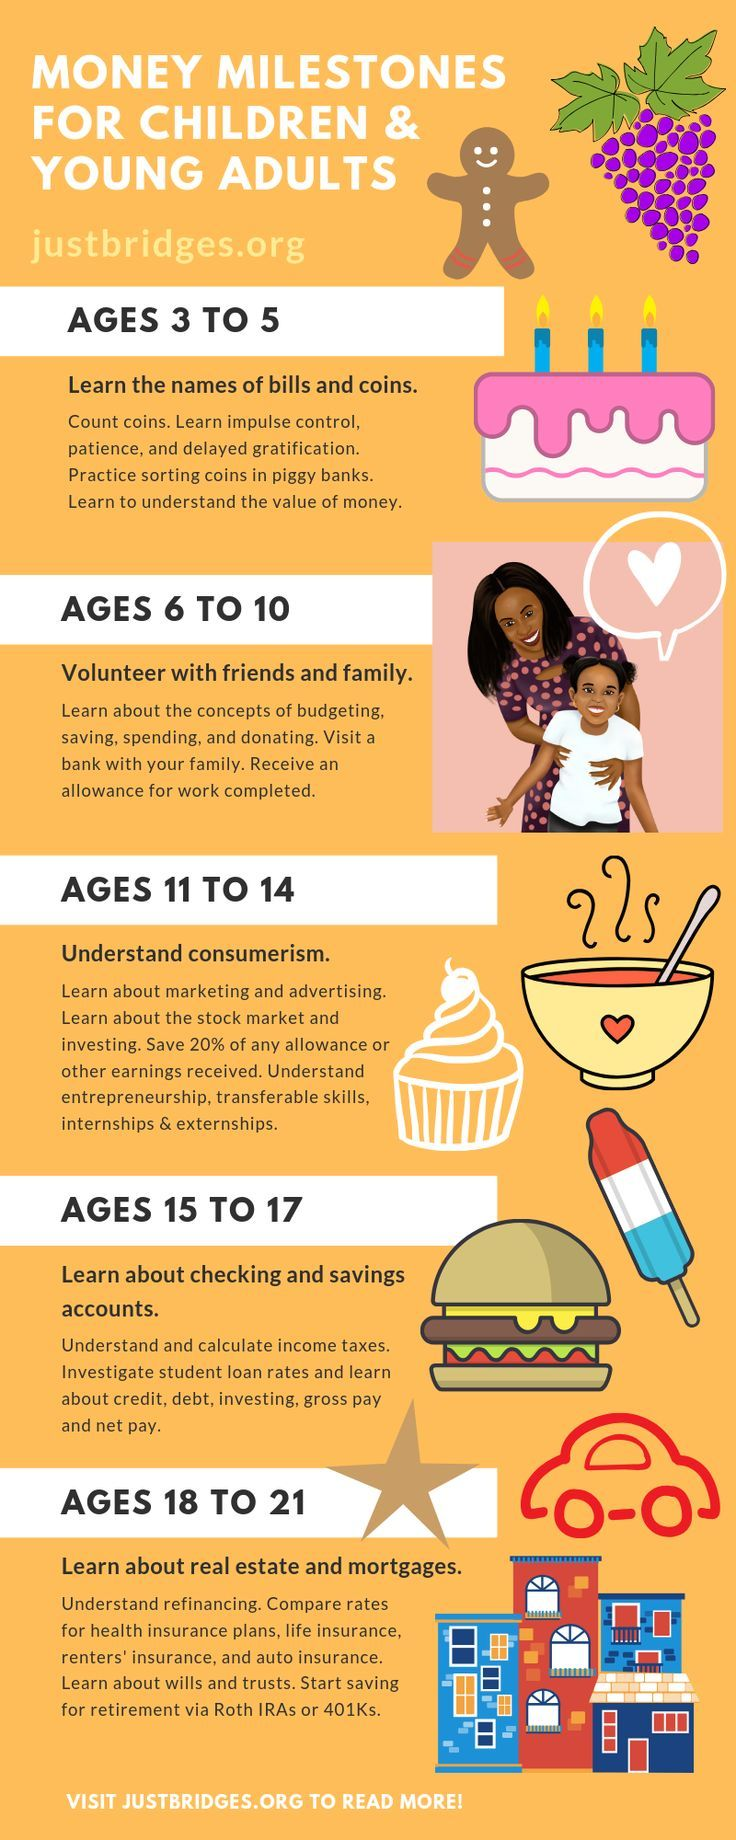 Money milestones for youth and young adults. Tips for when